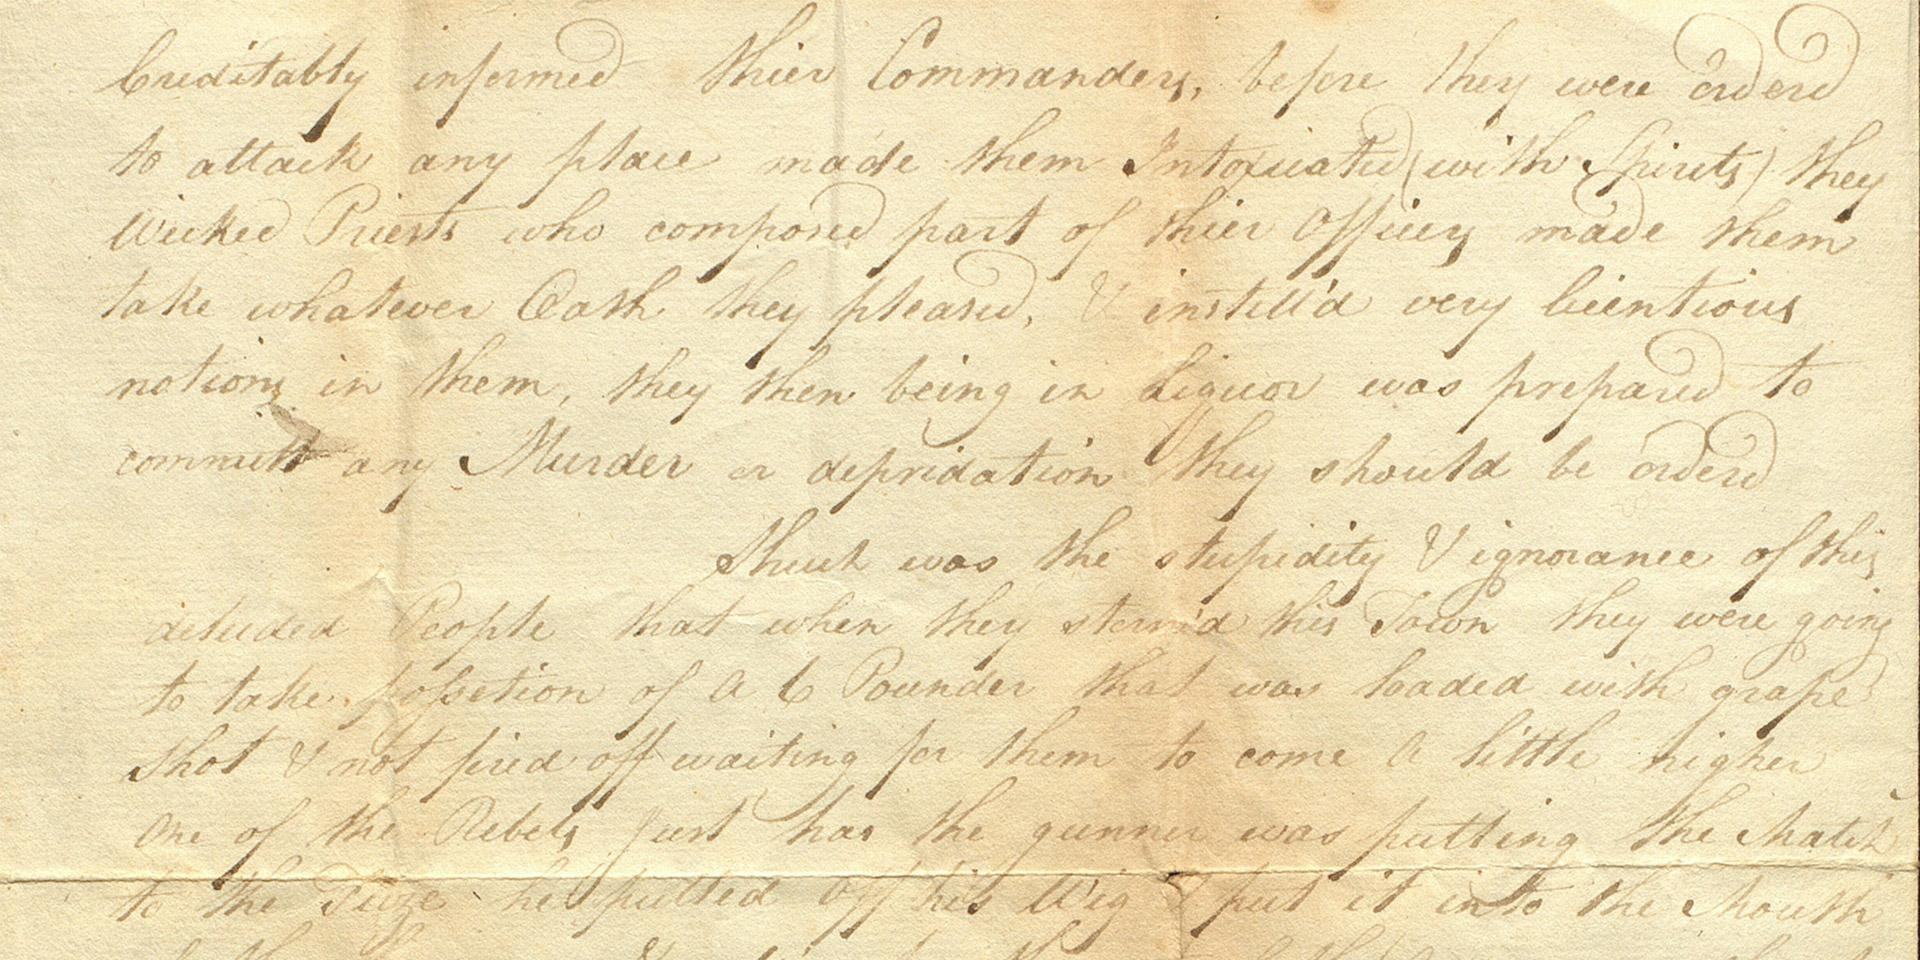 Letter from Corporal Samuel Blomeley, Coldstream Guards, conveying his impressions of the Irish Rebellion, 2 July 1798